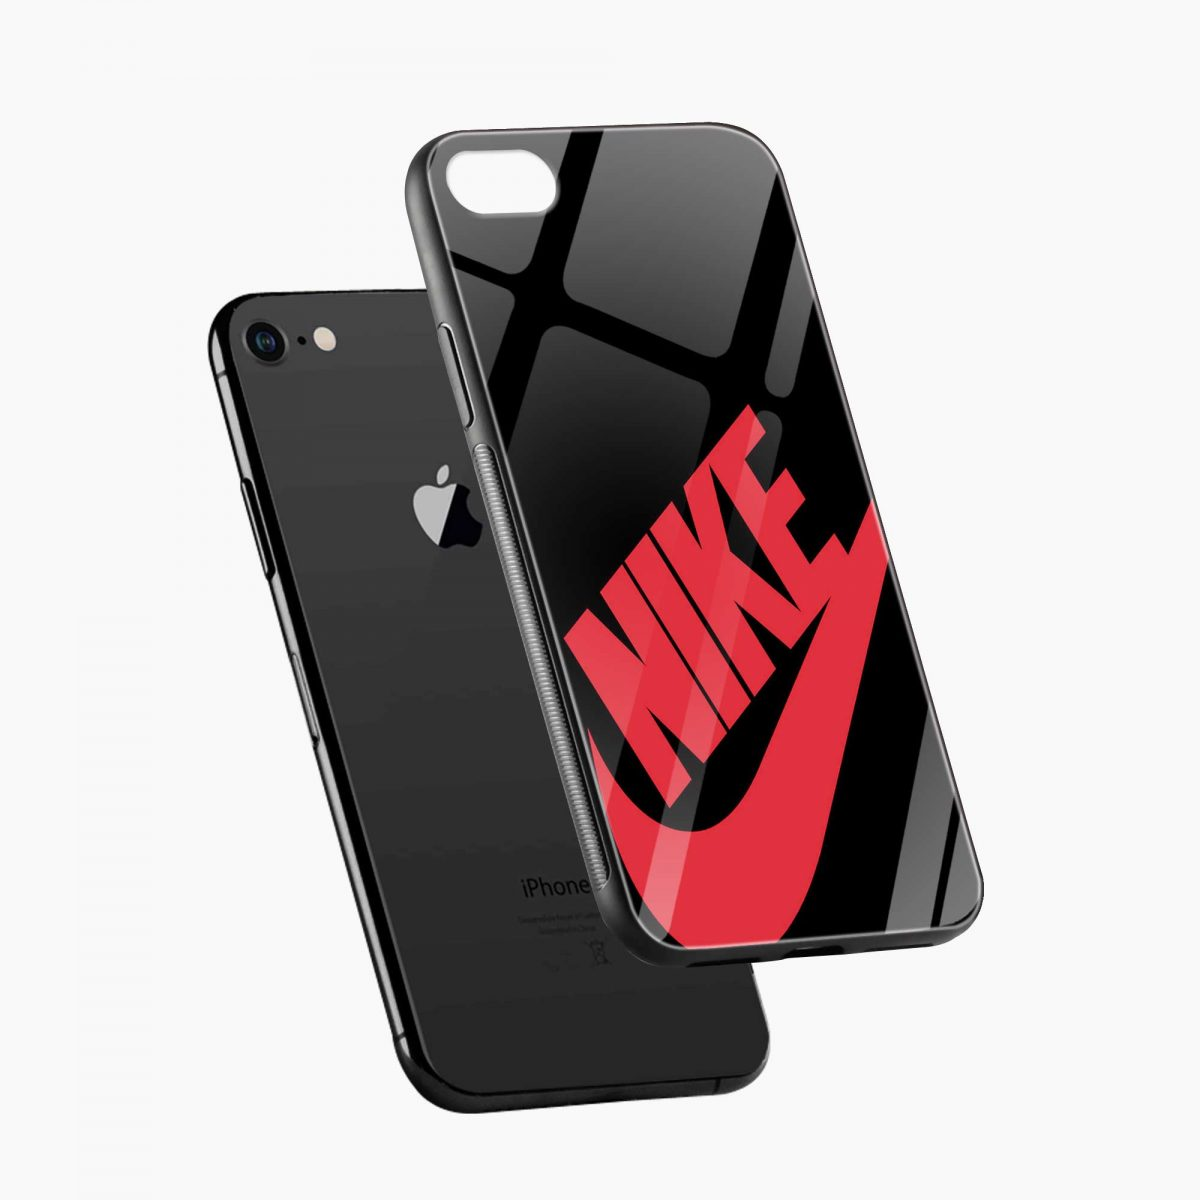 nike black red diagonal view apple iphone 6 7 8 se back cover 1